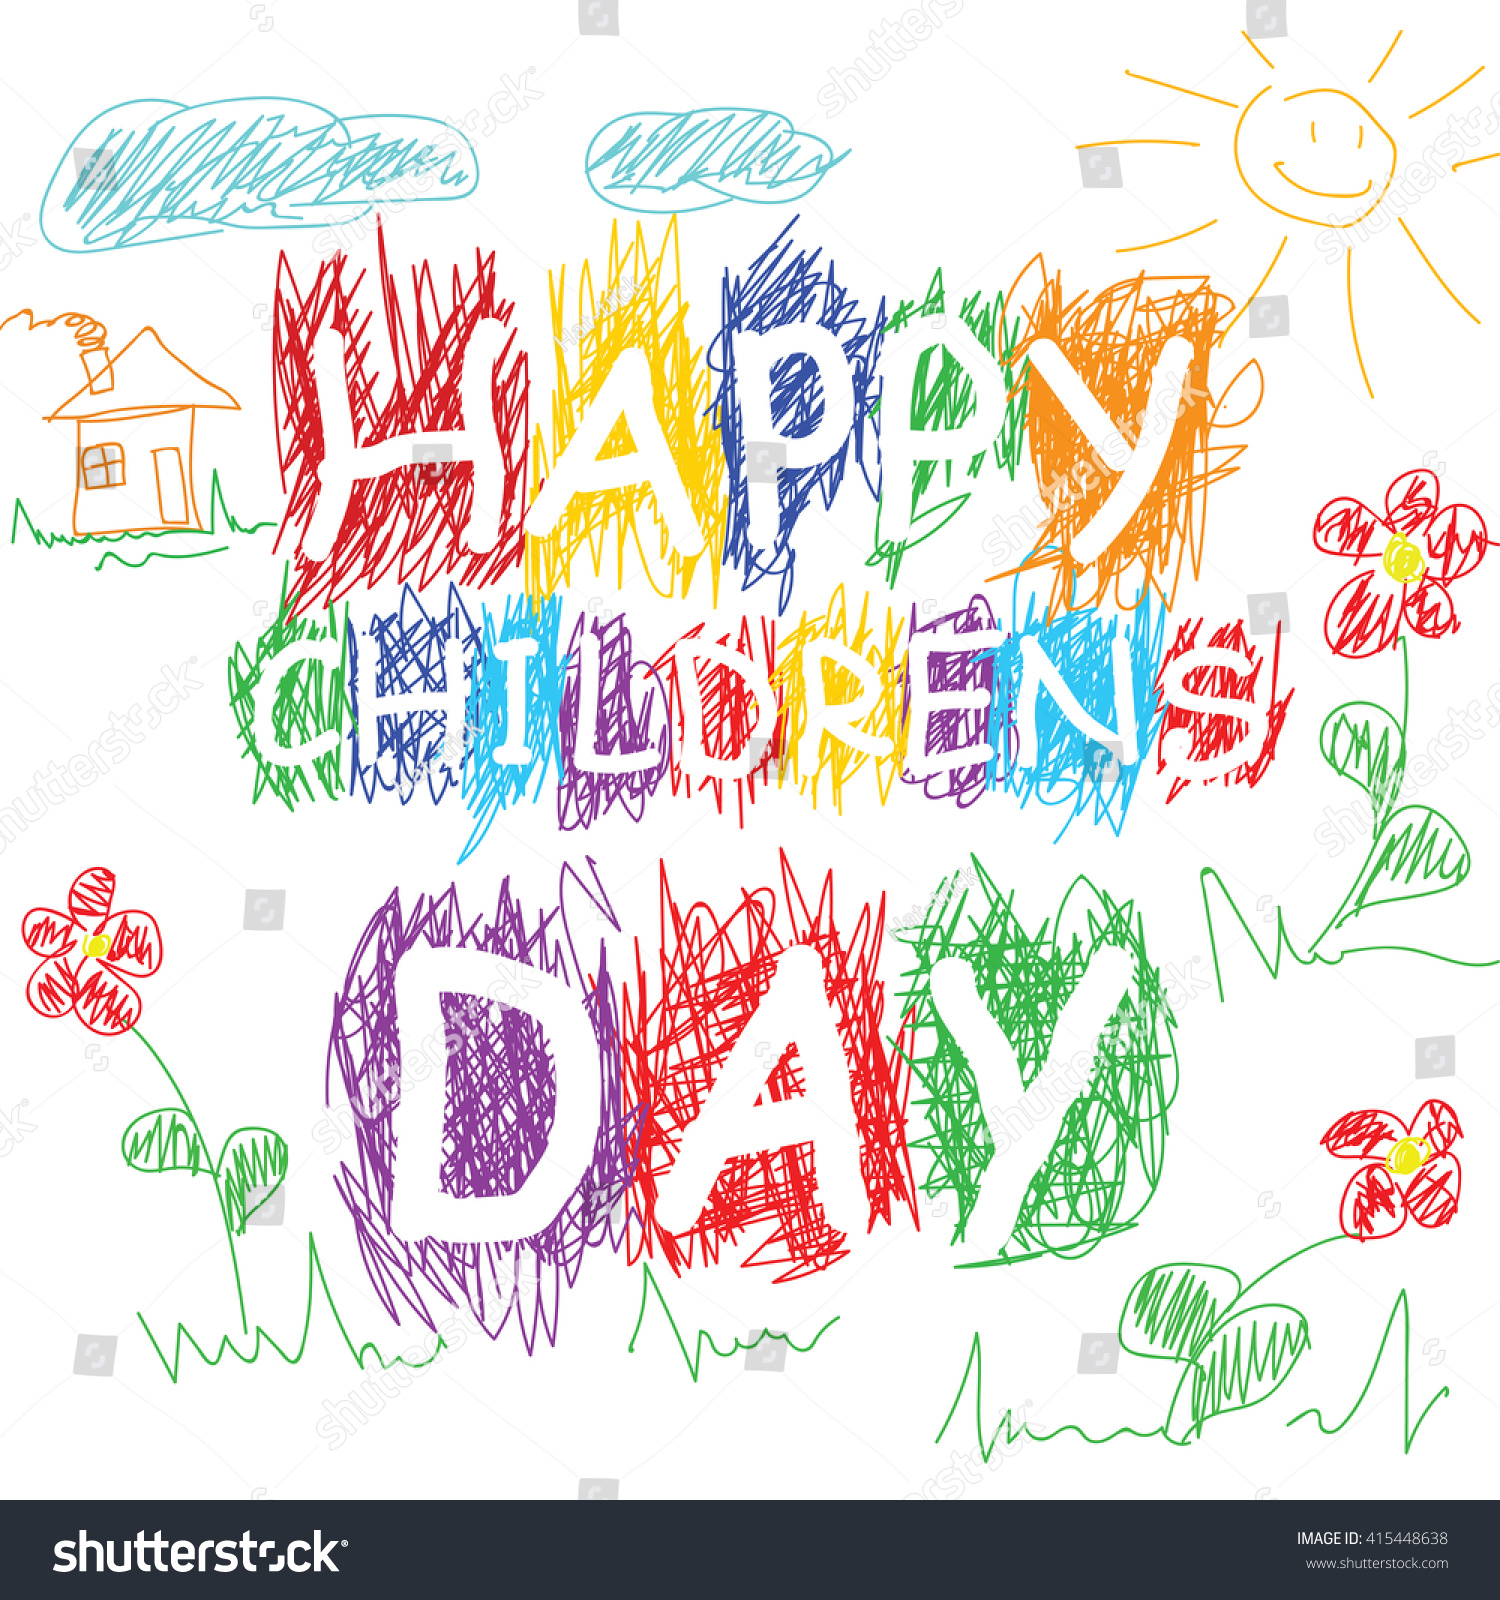 Drawings For Childrens Day